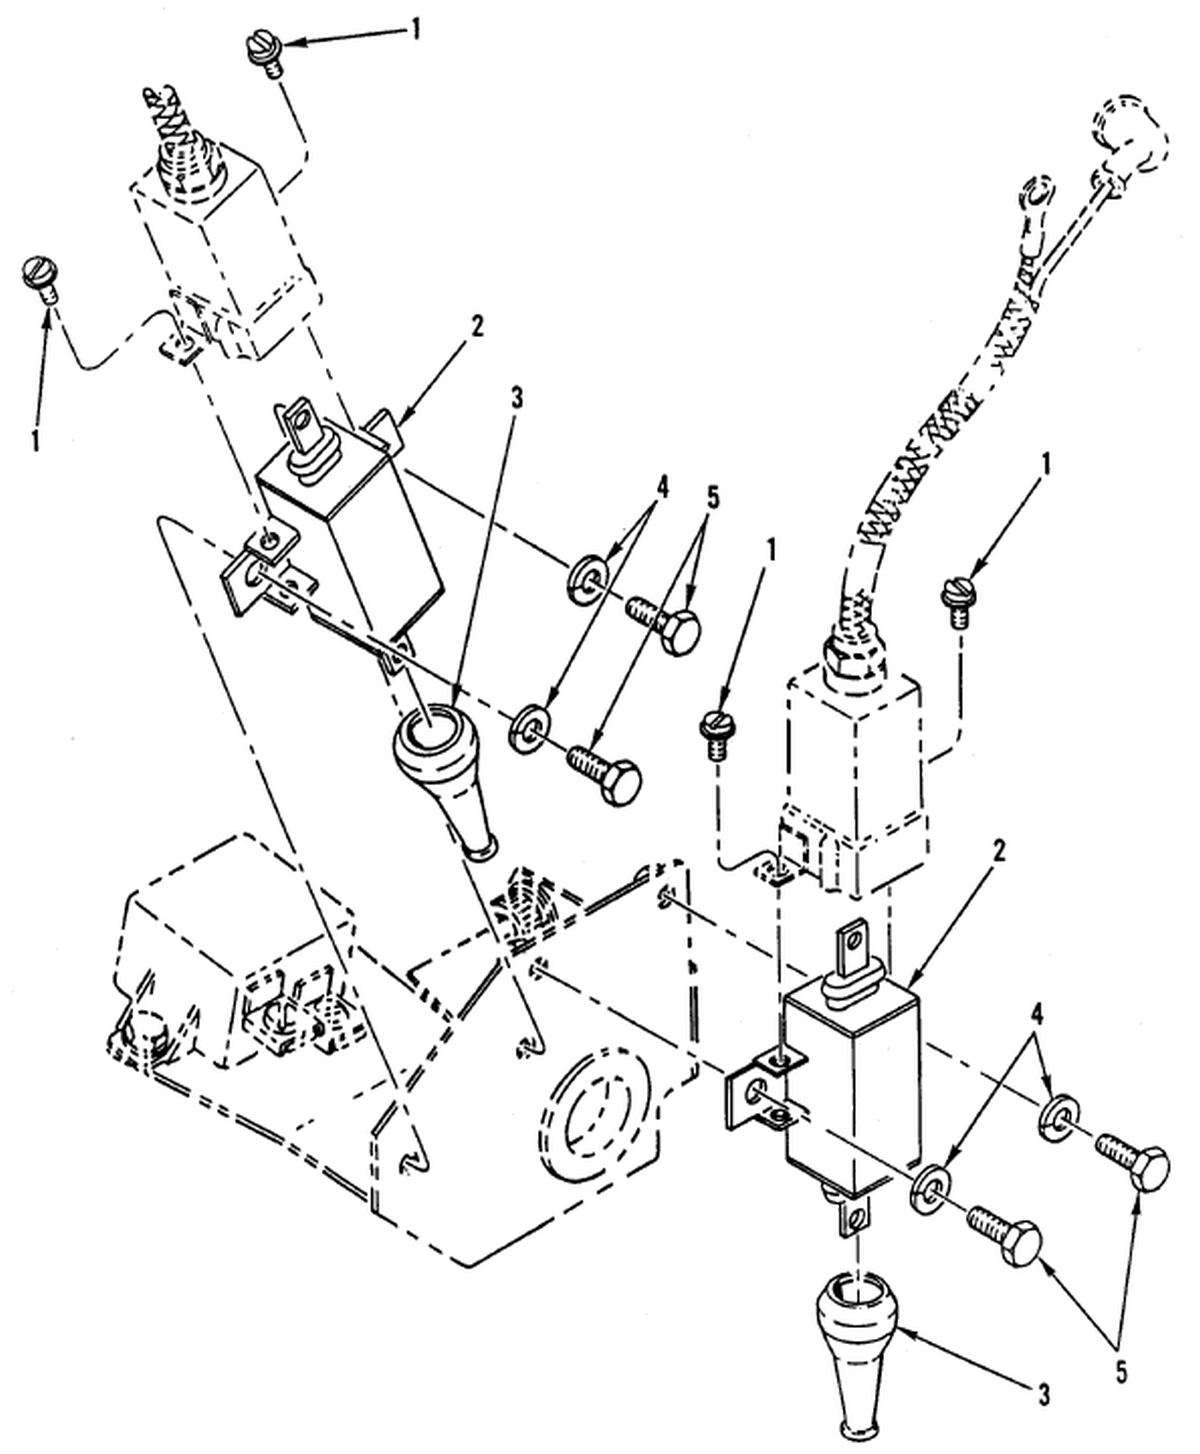 00 2 Figure 109 Radio Interference Suppression